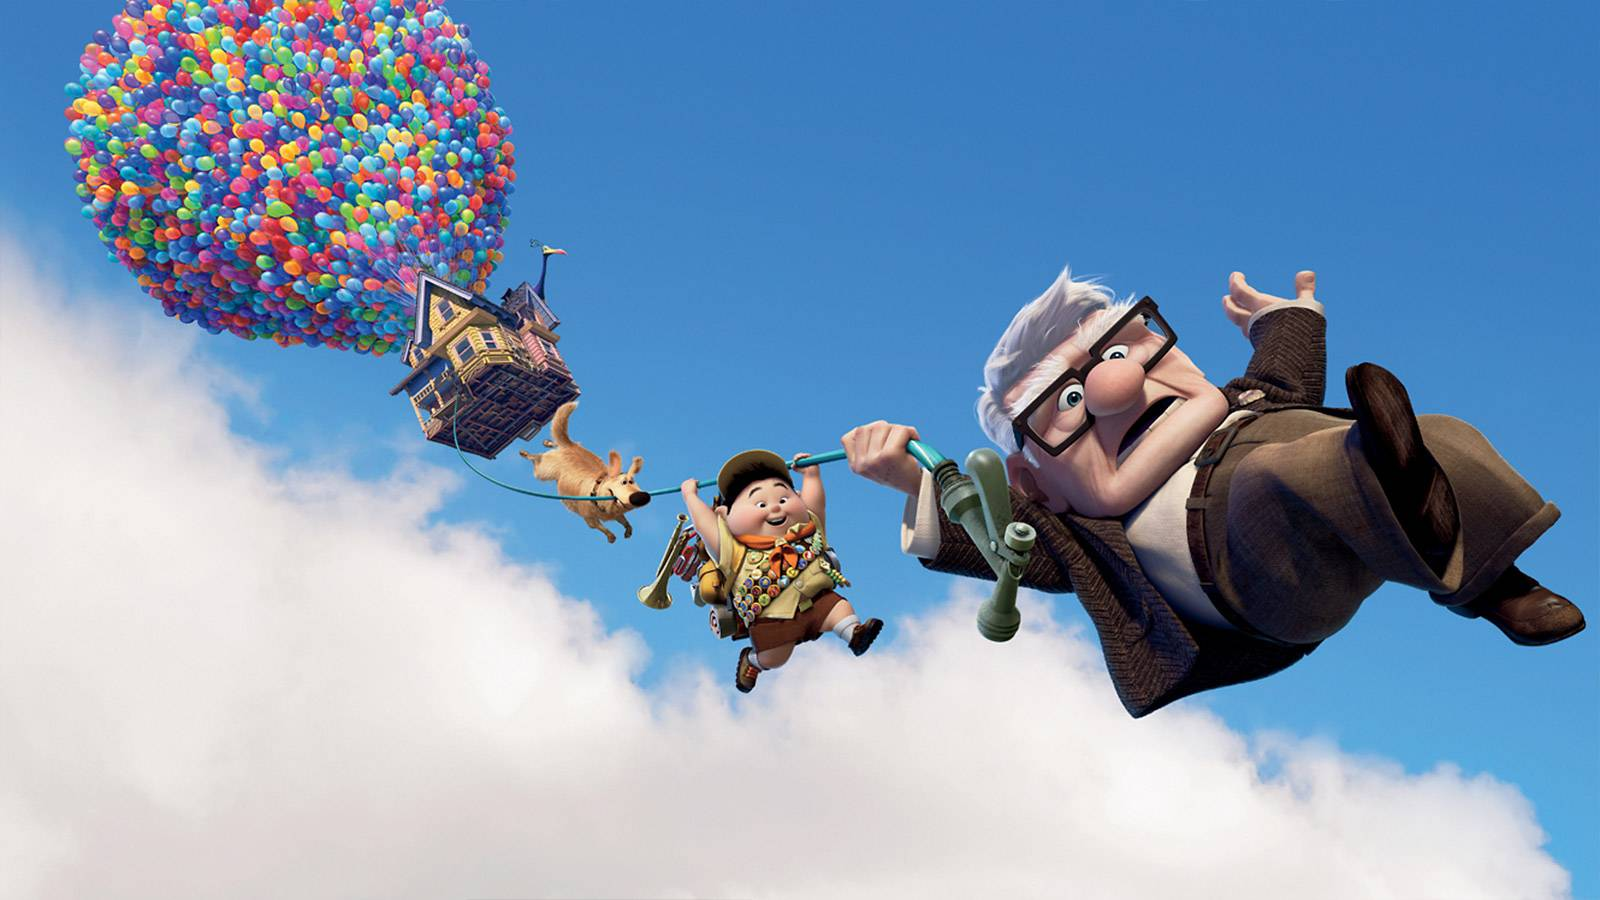 Tots--6-best-animated-movies-for-your-kids-up